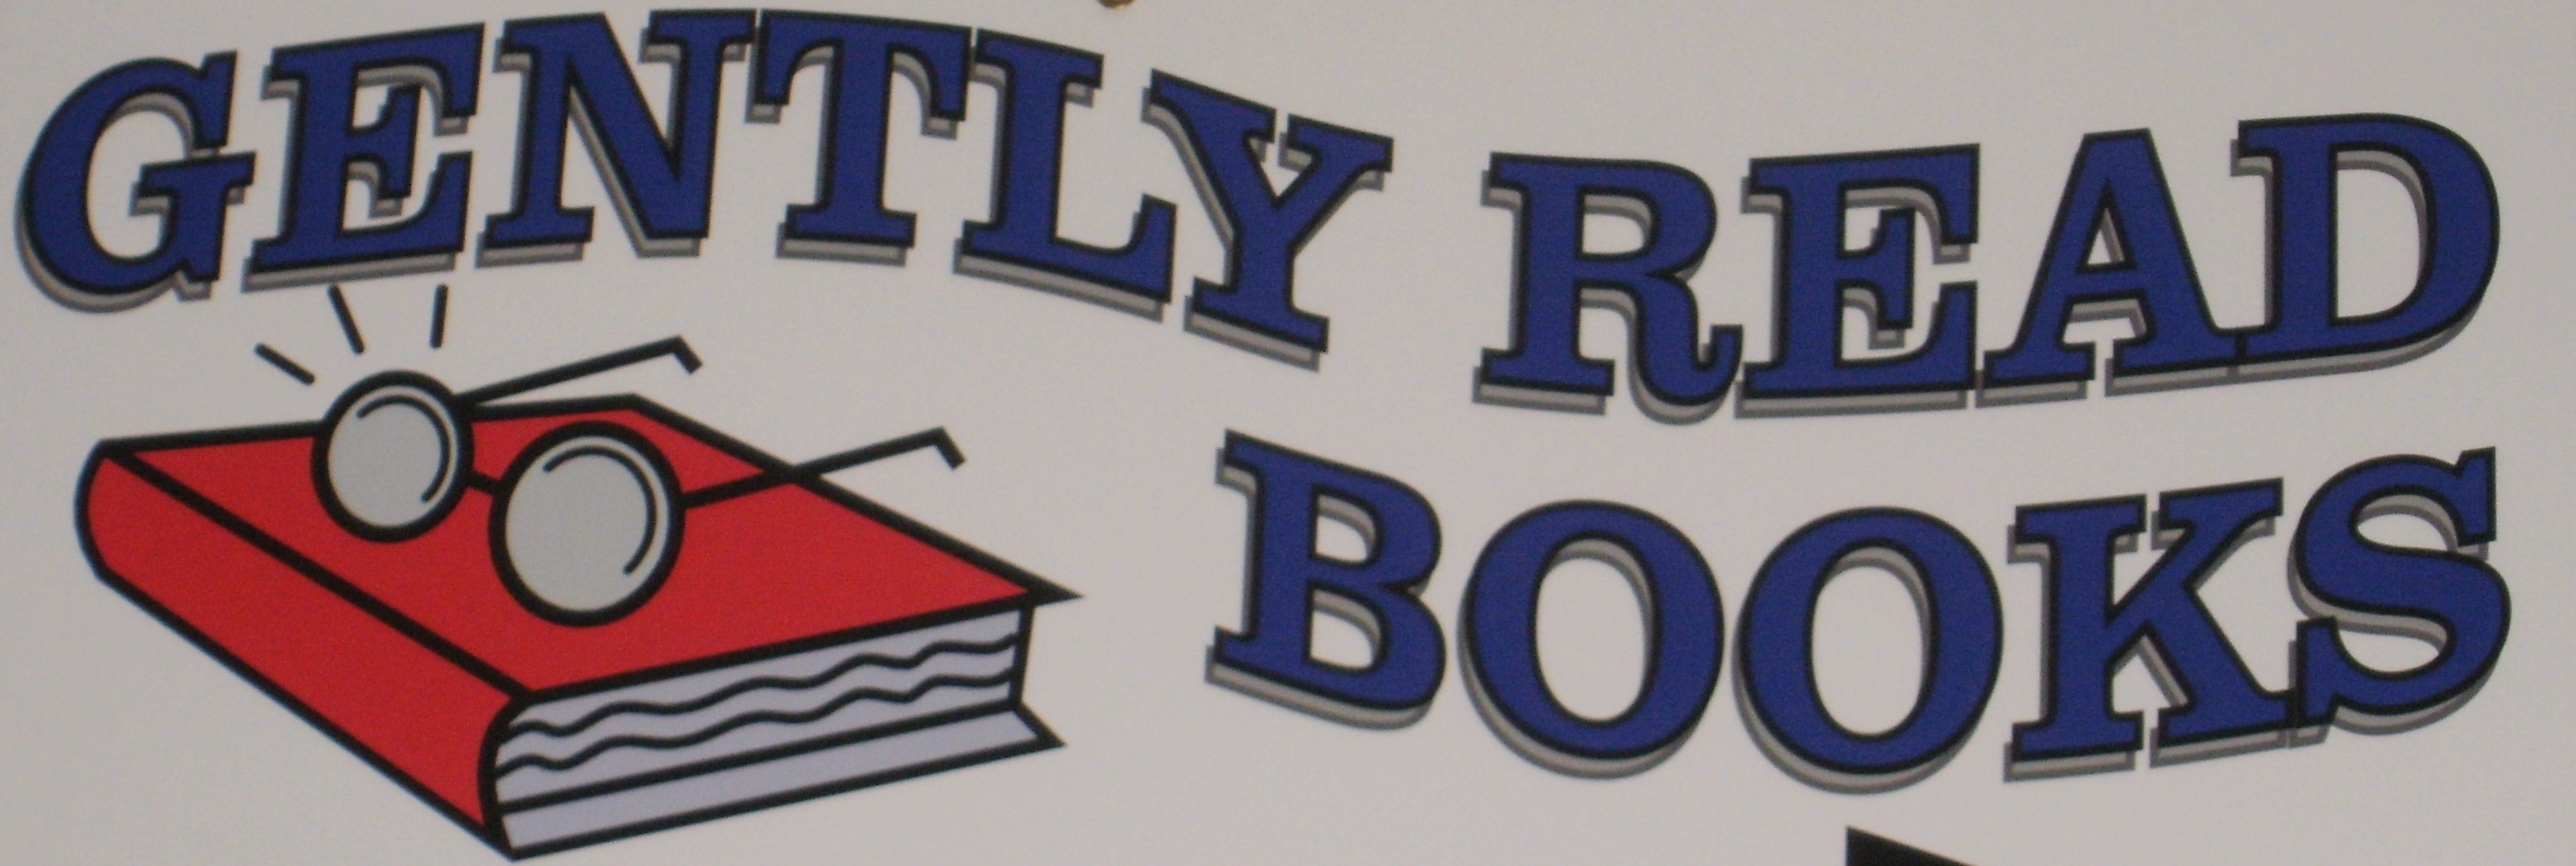 Gently Read Books company logo